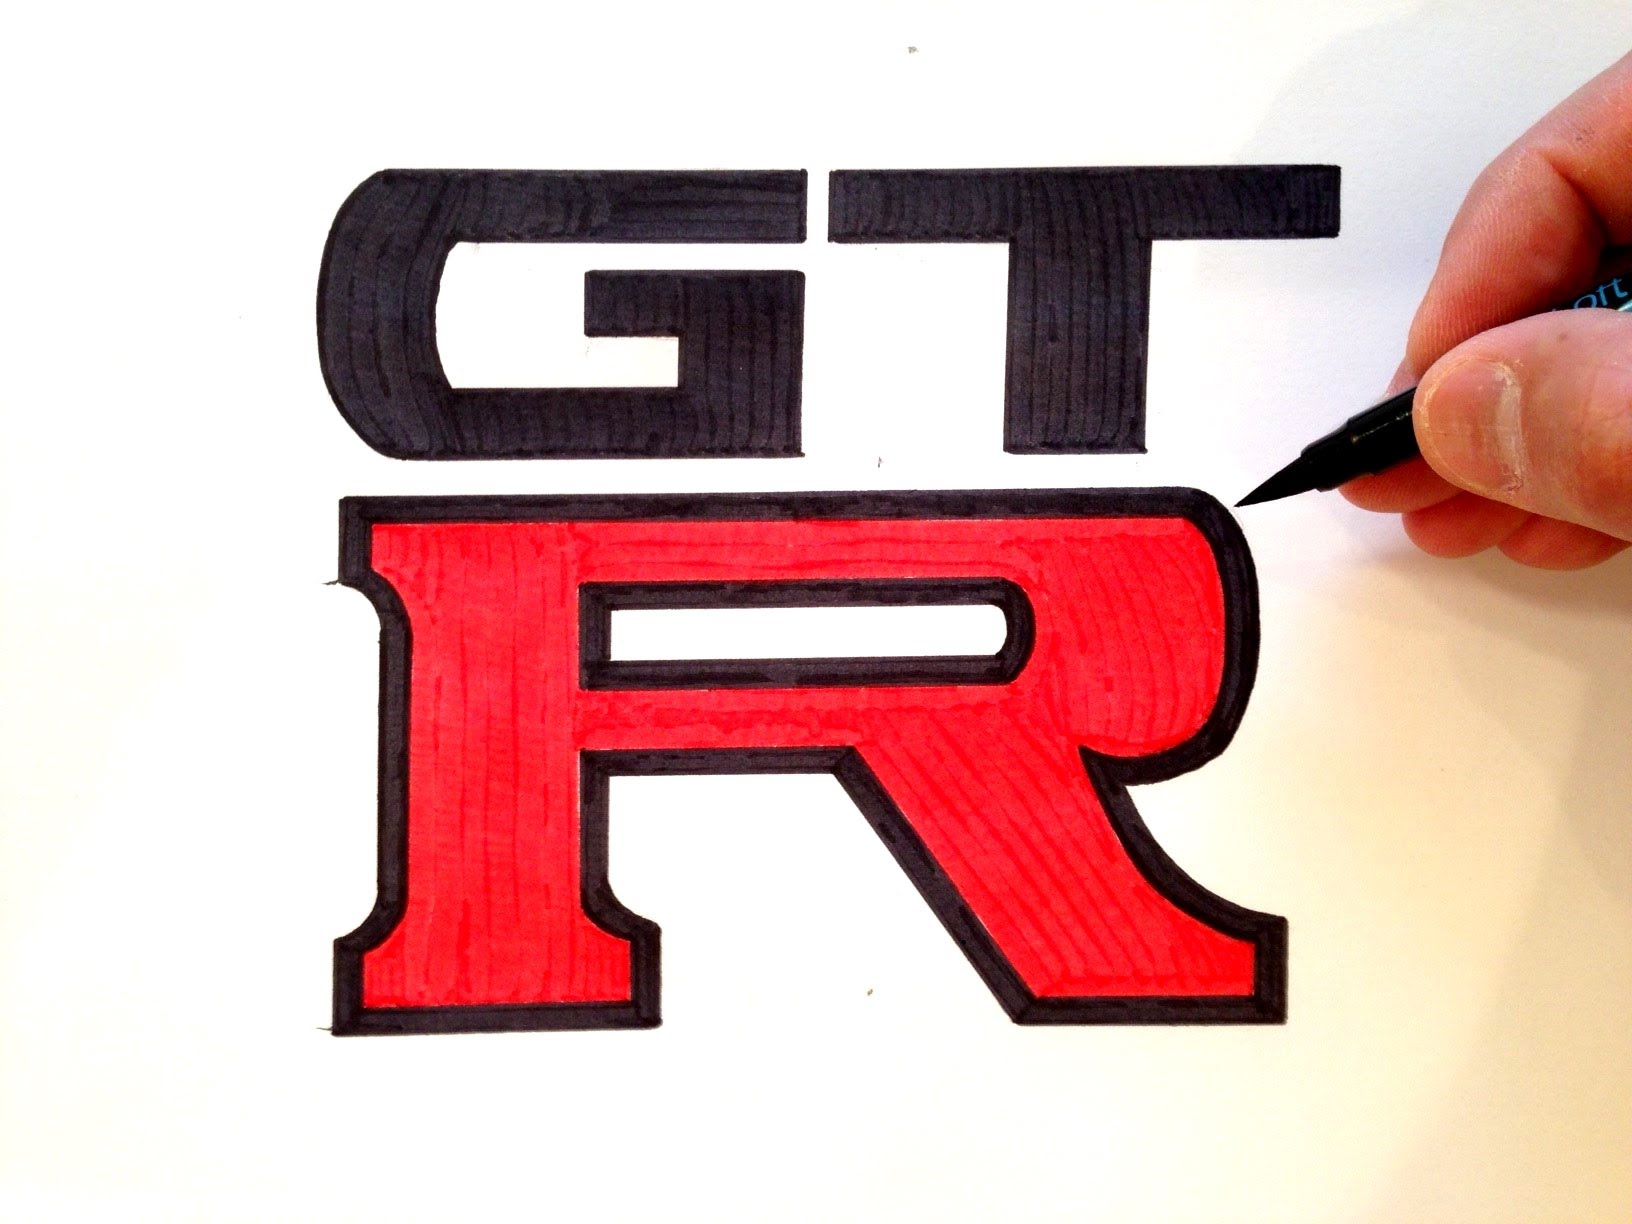 1632x1224 How To Draw The Nissan Gt R Logo